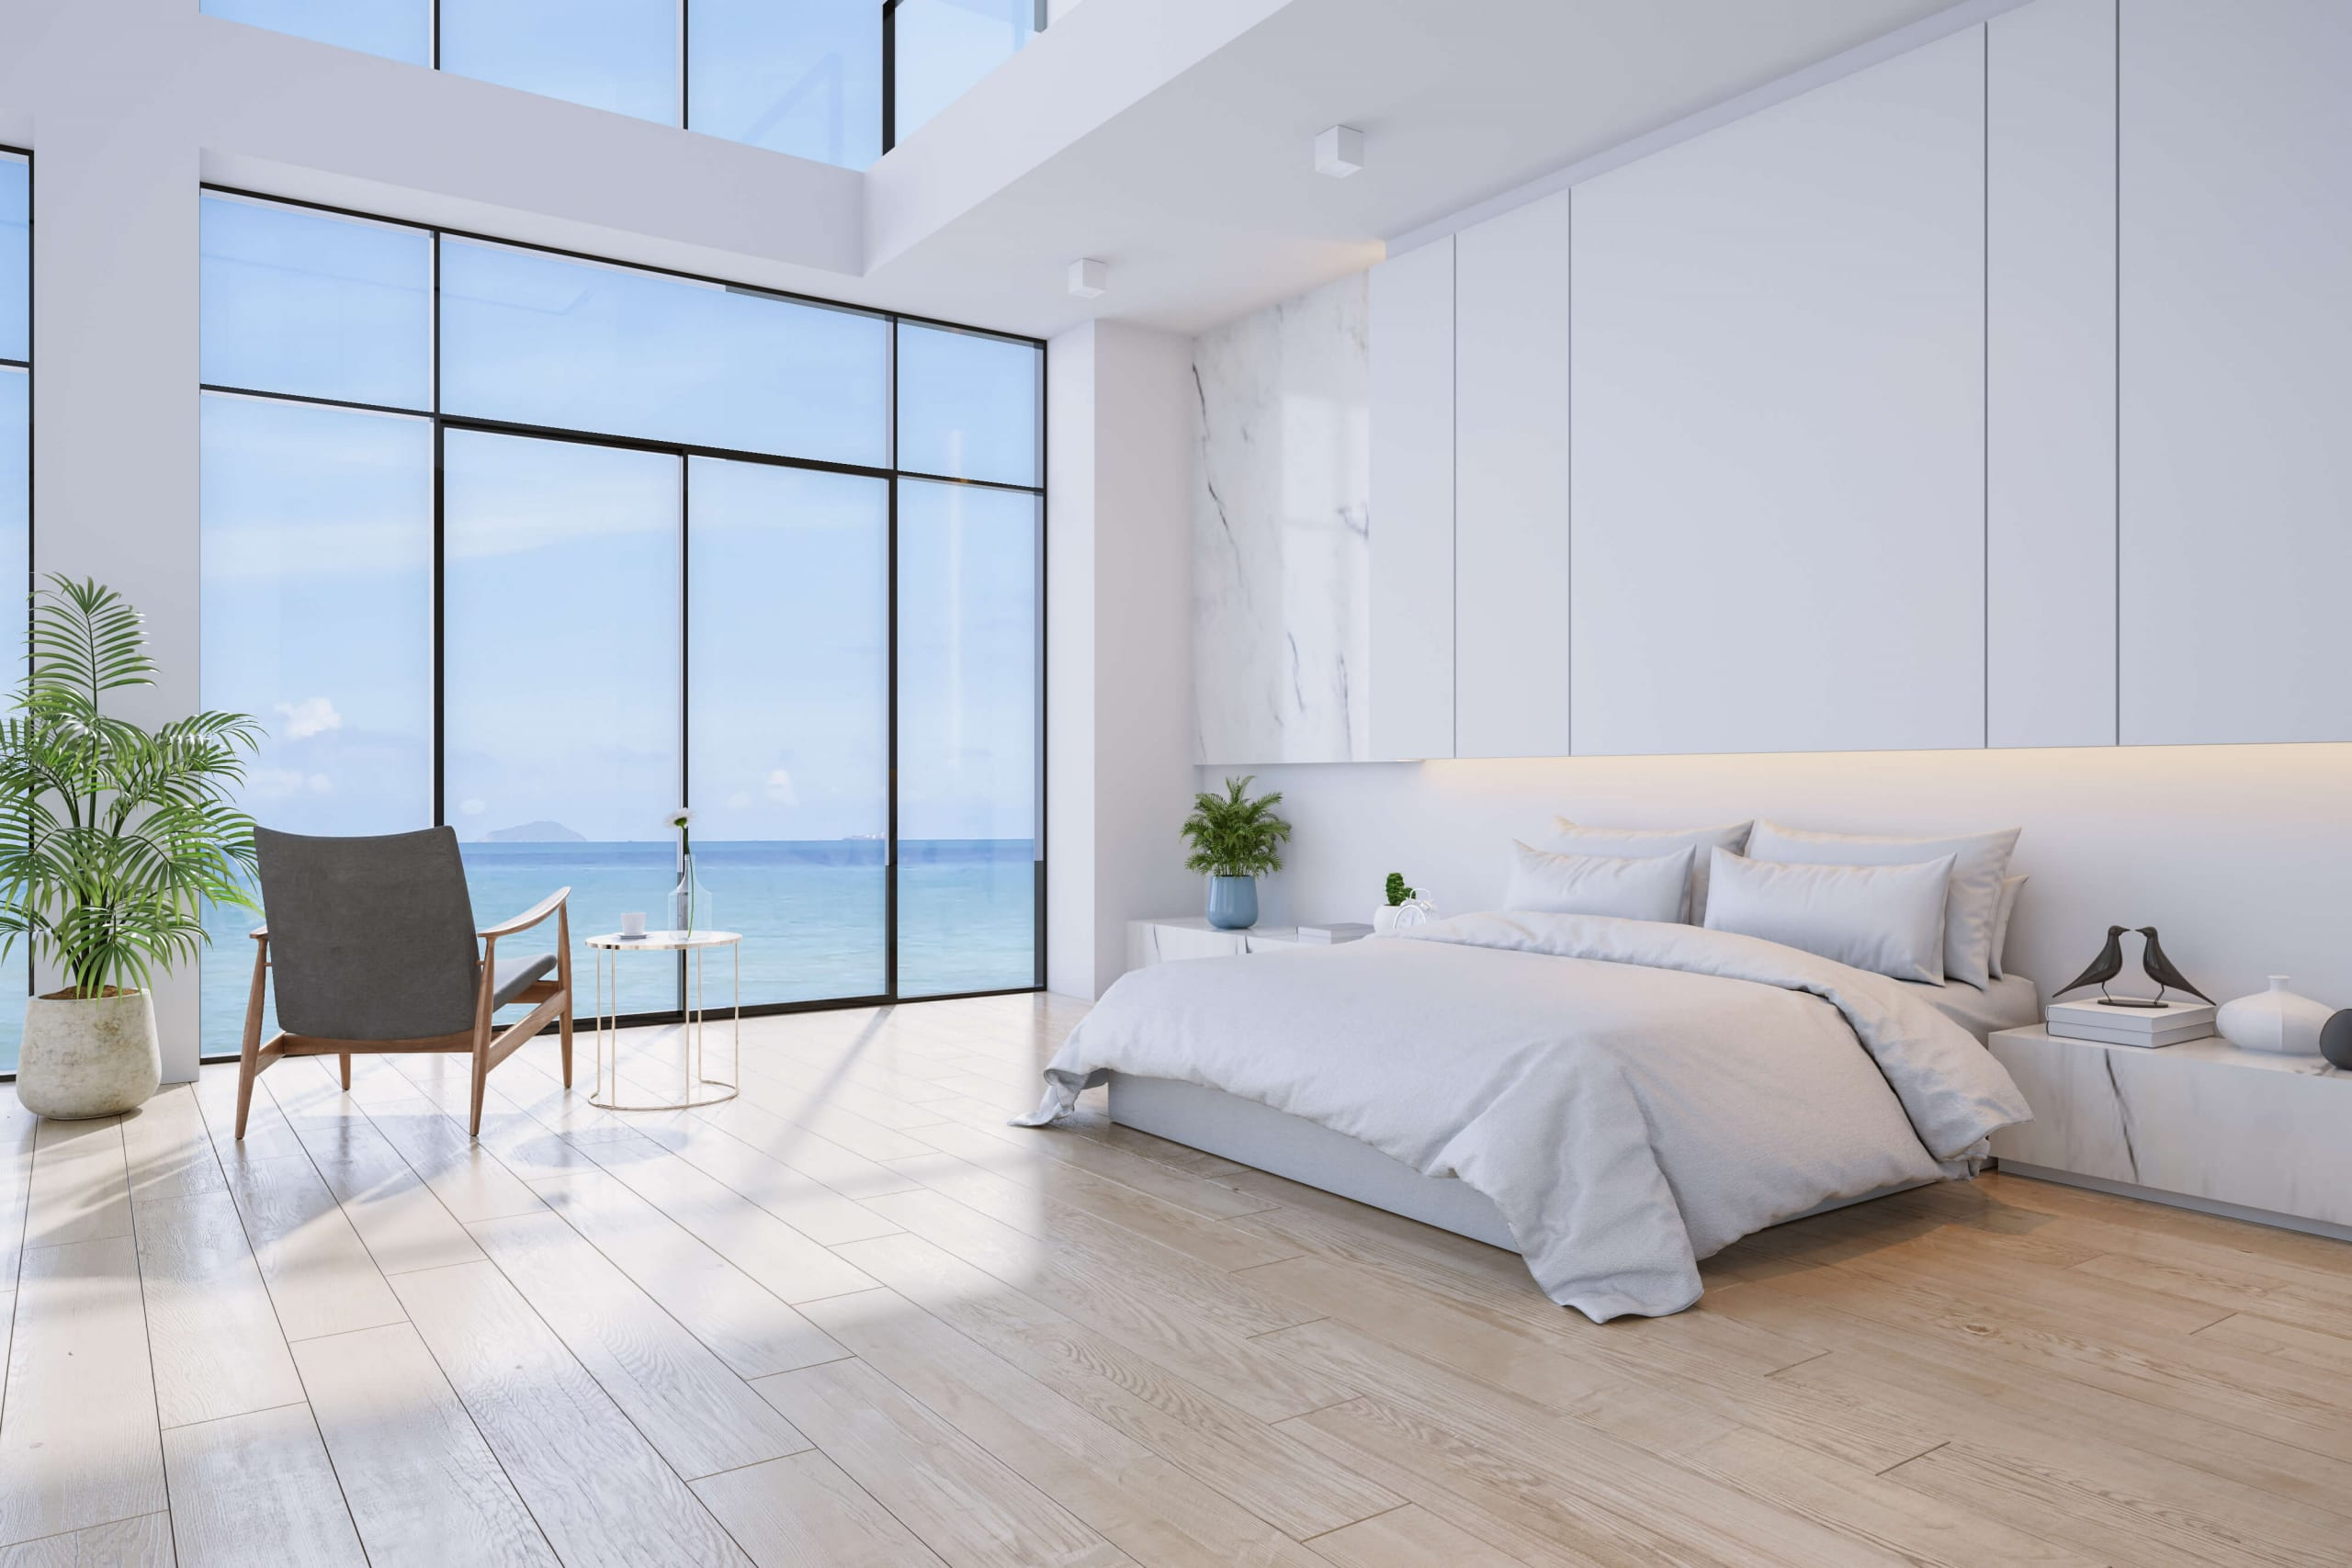 Bed Kings Guide to Designing your Bedroom